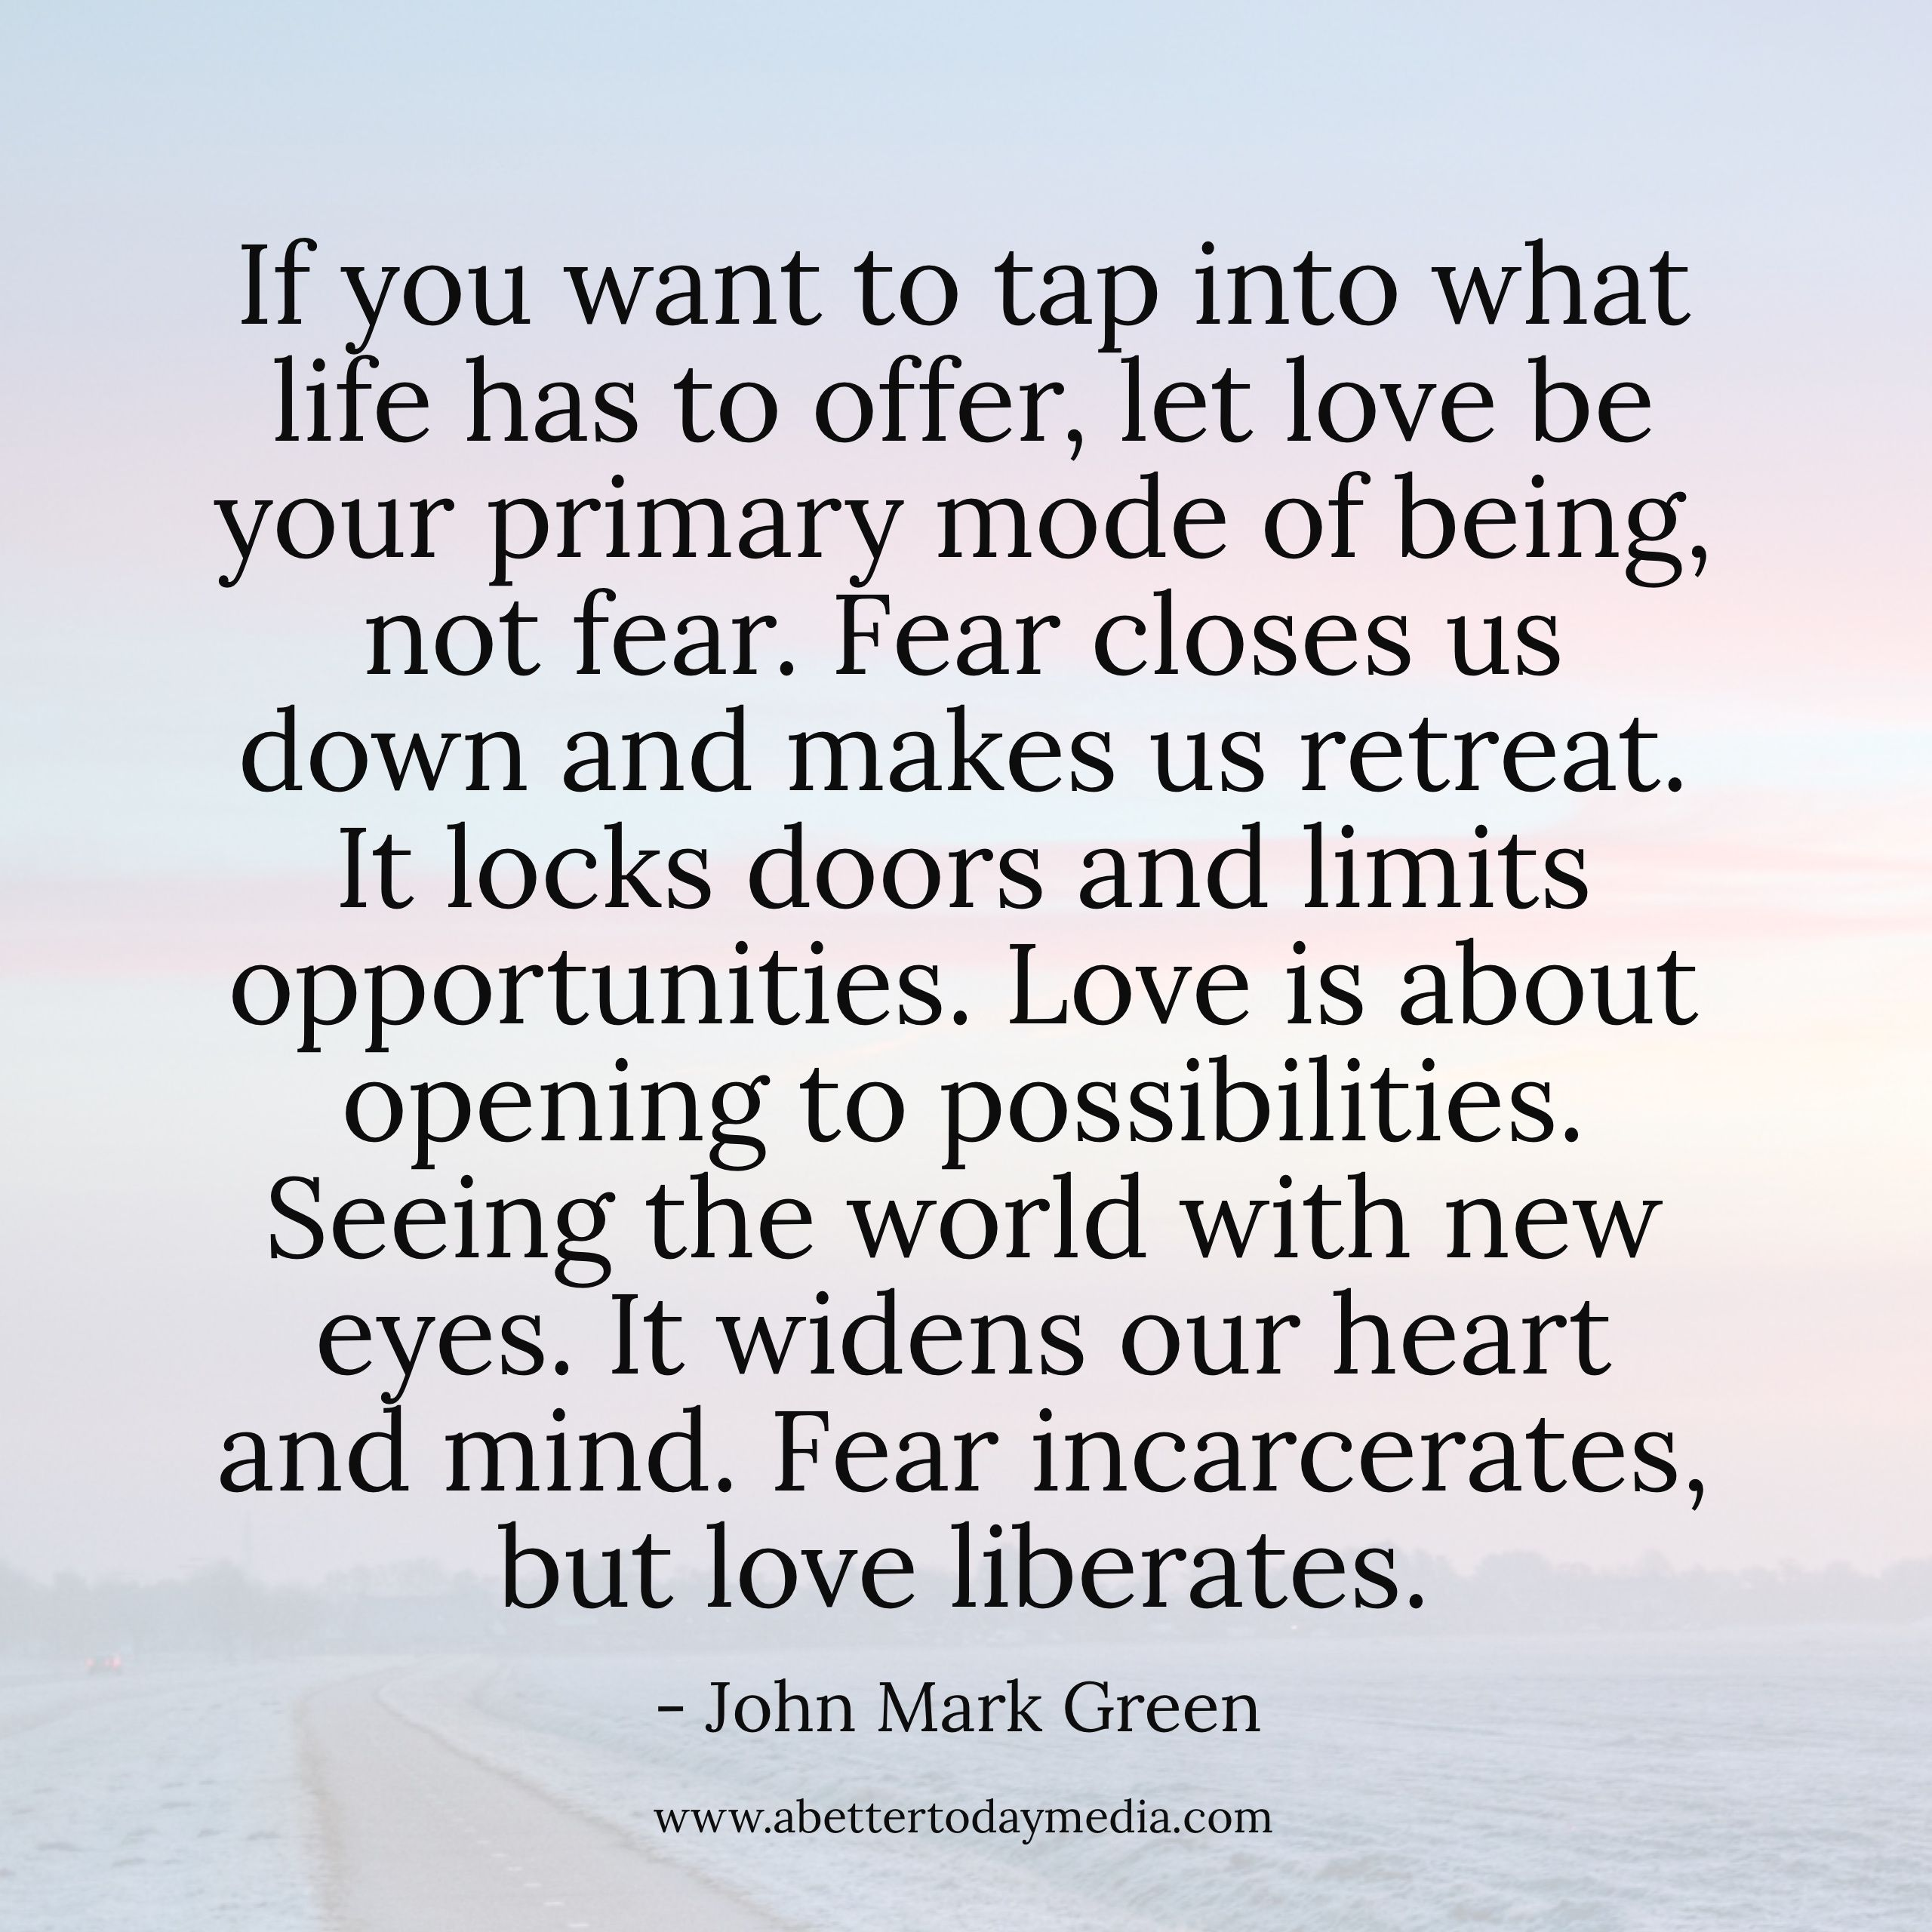 17 Powerful Quotes: Inspiring Words for the New Year | Quotes ...